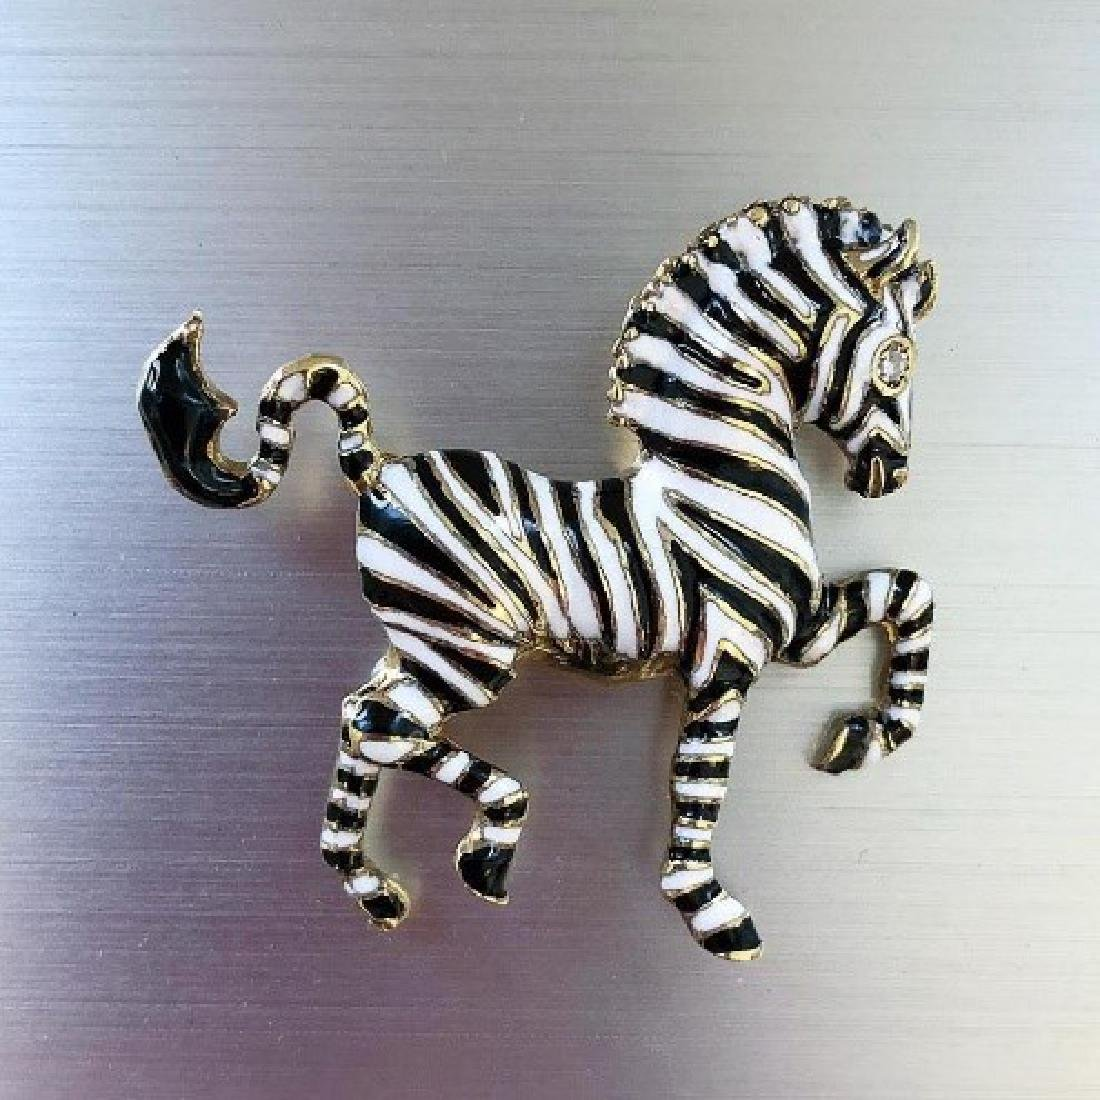 Circa 1970s Signed Martine Zebra Brooch